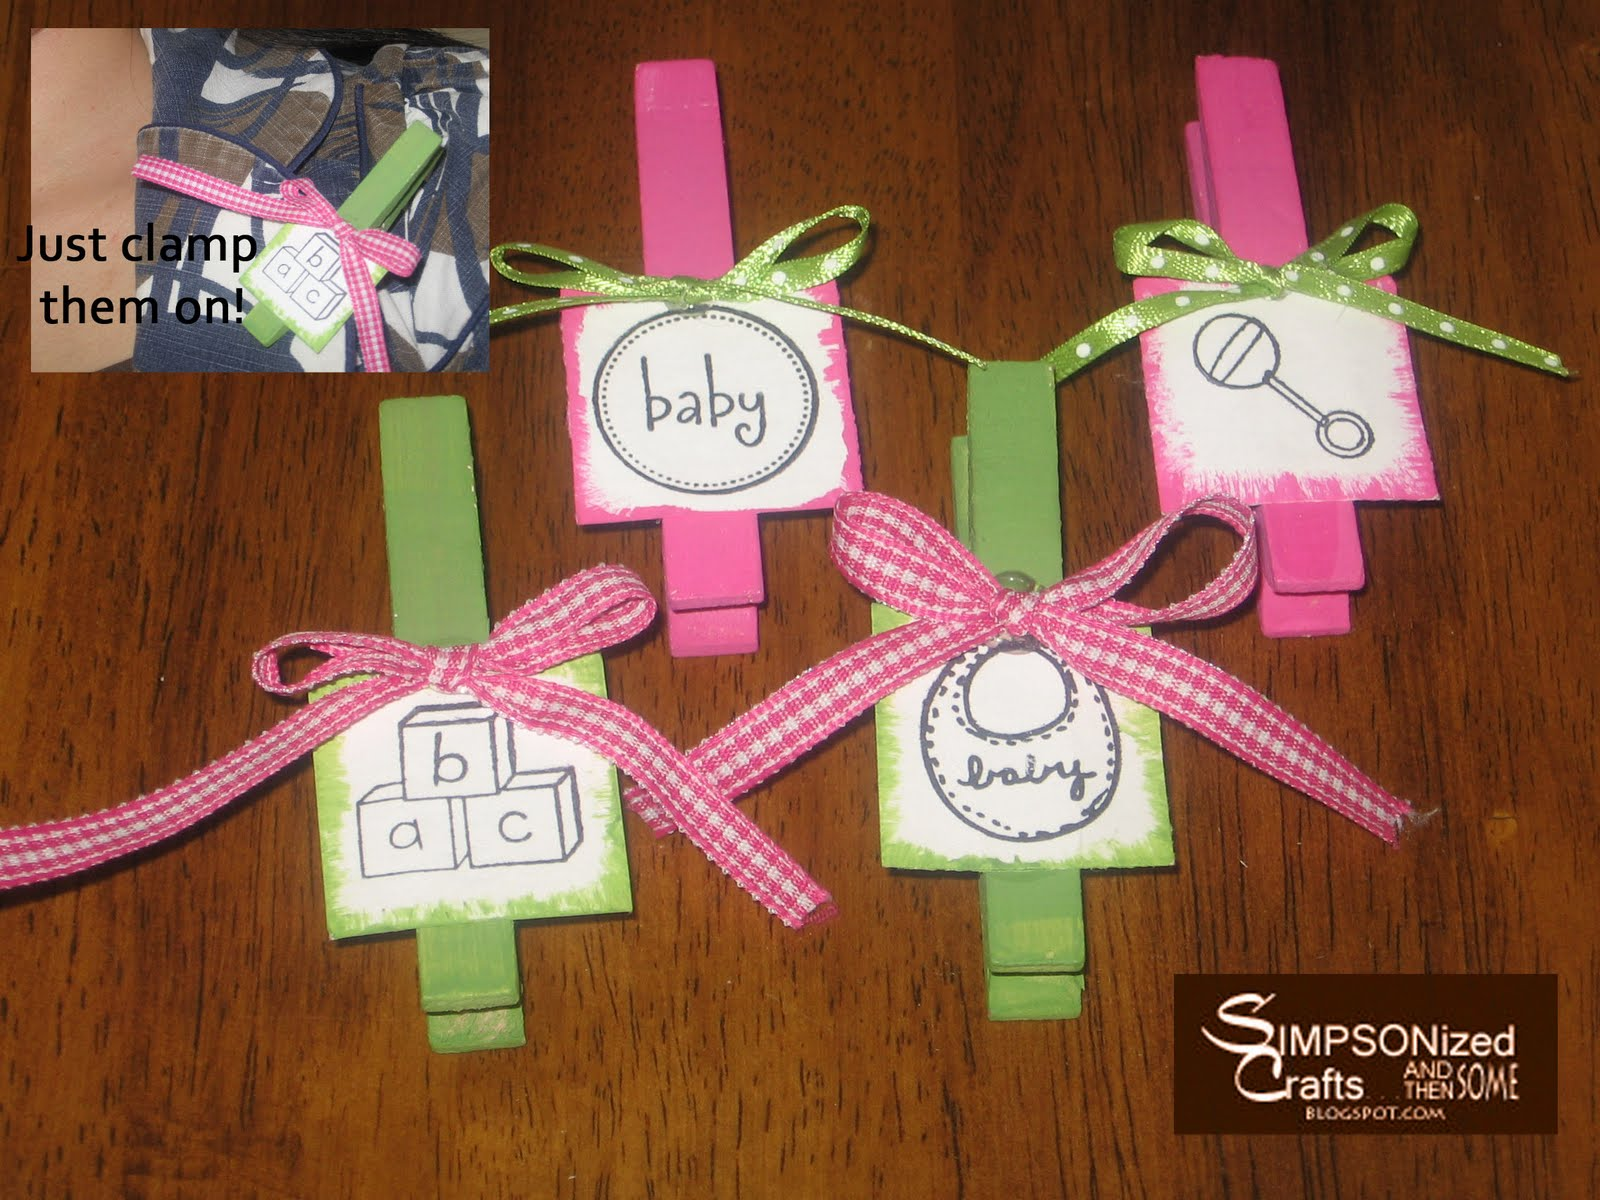 SIMPSONIZED CRAFTS: Baby Shower Clothespin Favors